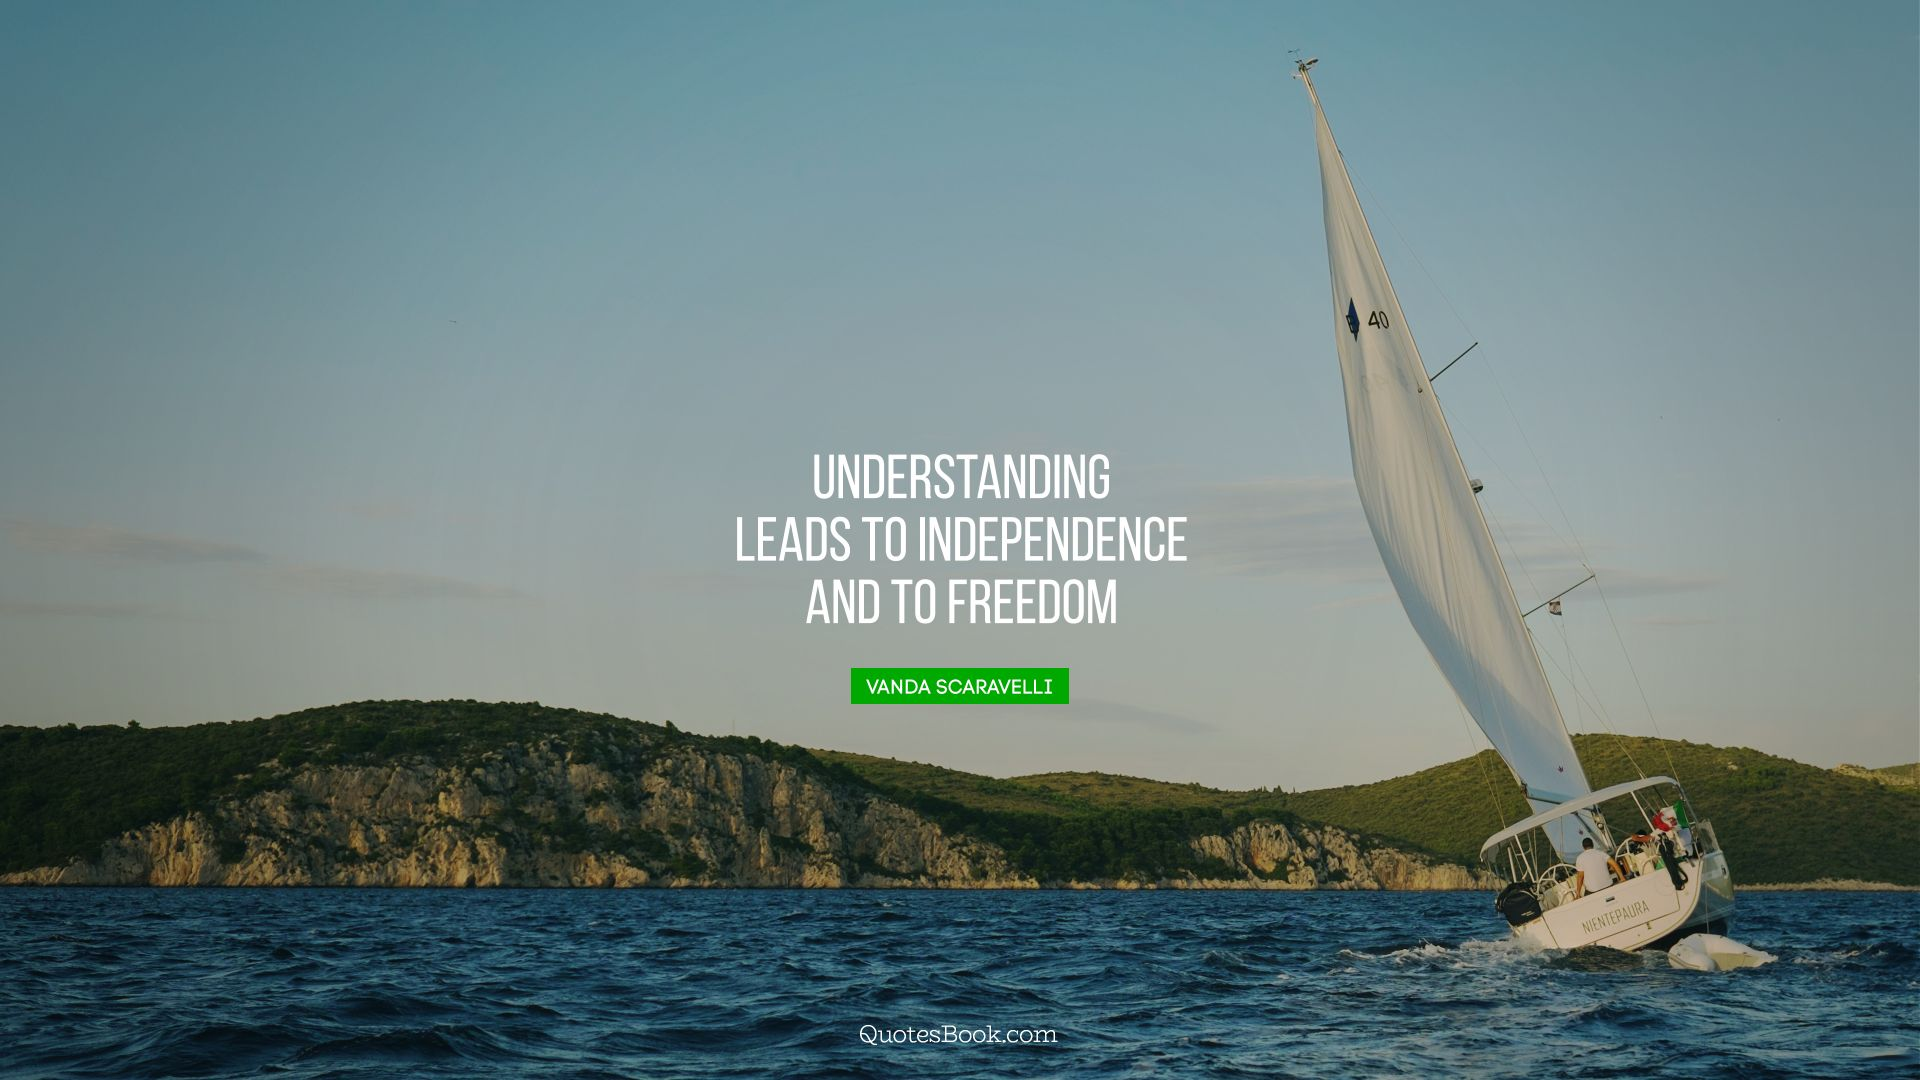 Understanding leads to independence and to freedom. - Quote by Vanda Scaravelli